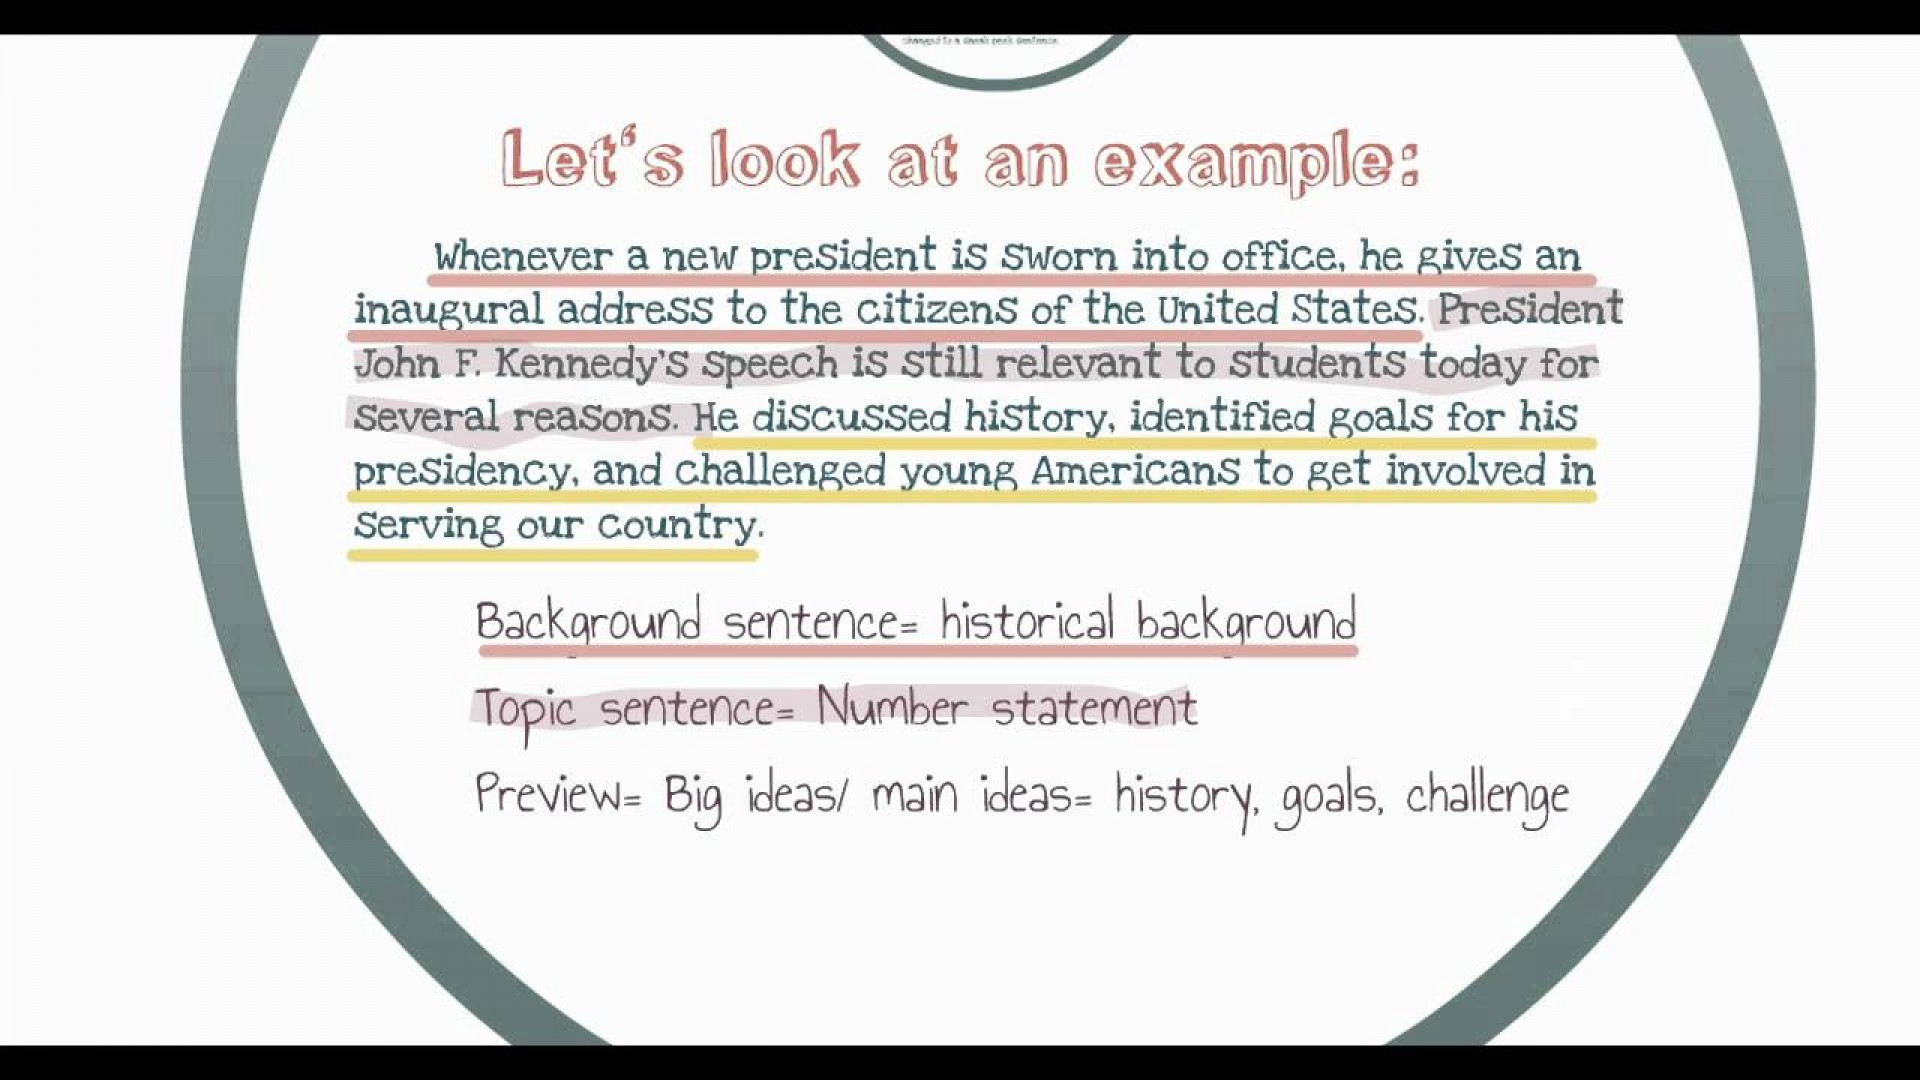 001 Essay Example Maxresdefault How To Write An Intro Paragraph Awful For Analytical Introduction About Yourself Start Introductory 1920